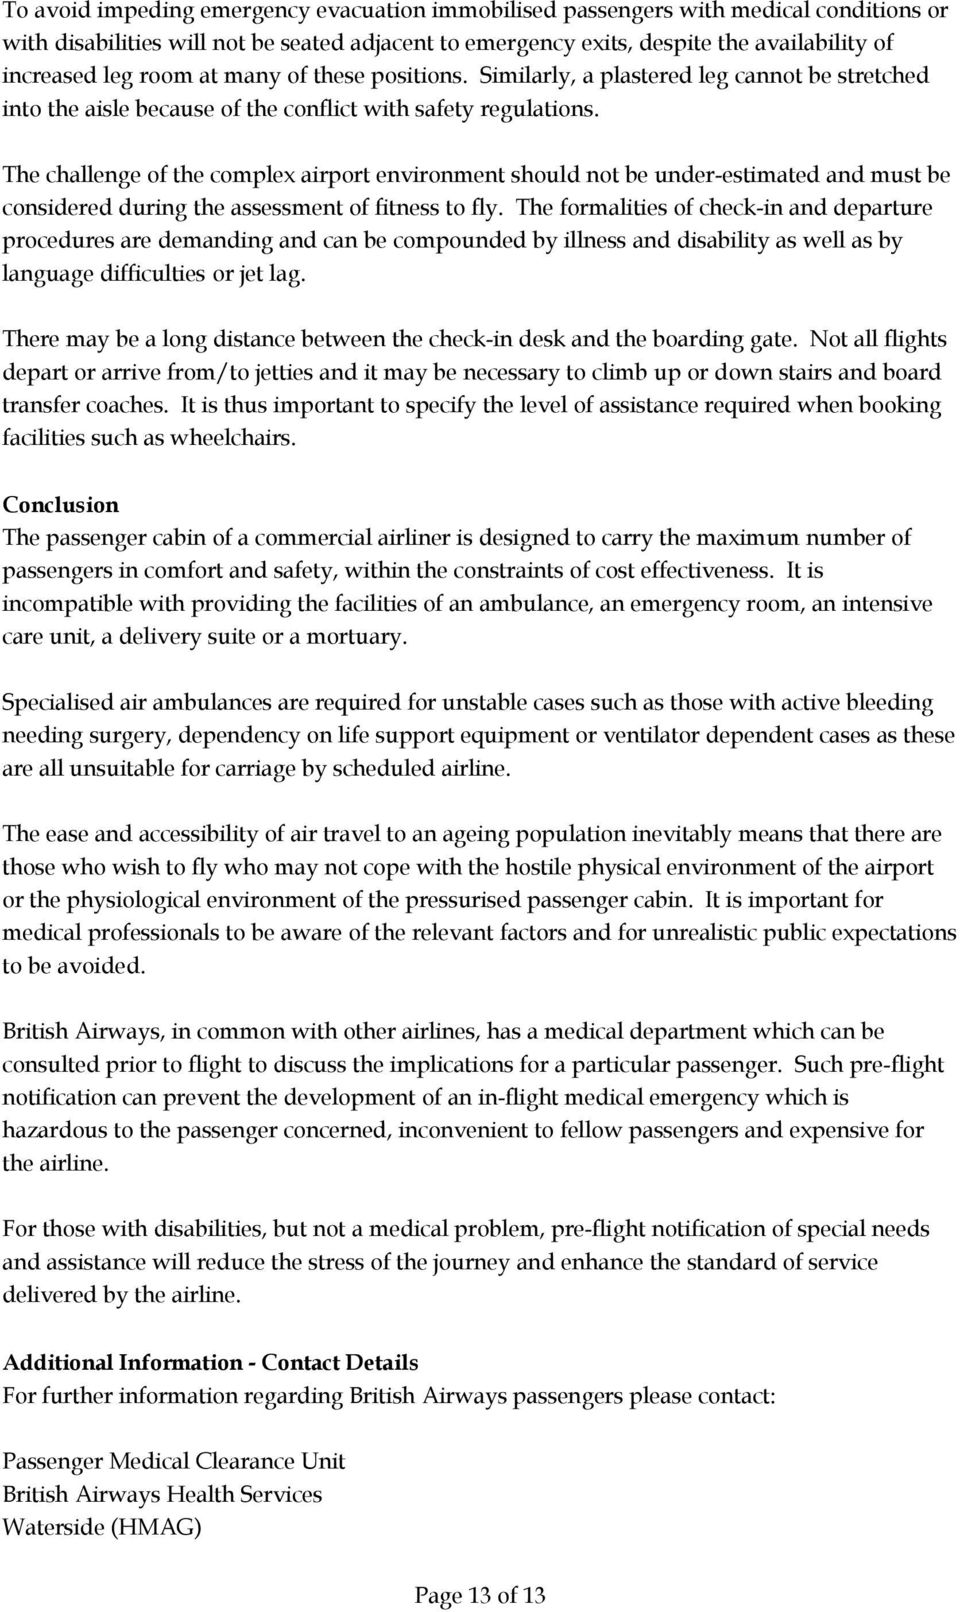 The challenge of the complex airport environment should not be under-estimated and must be considered during the assessment of fitness to fly.